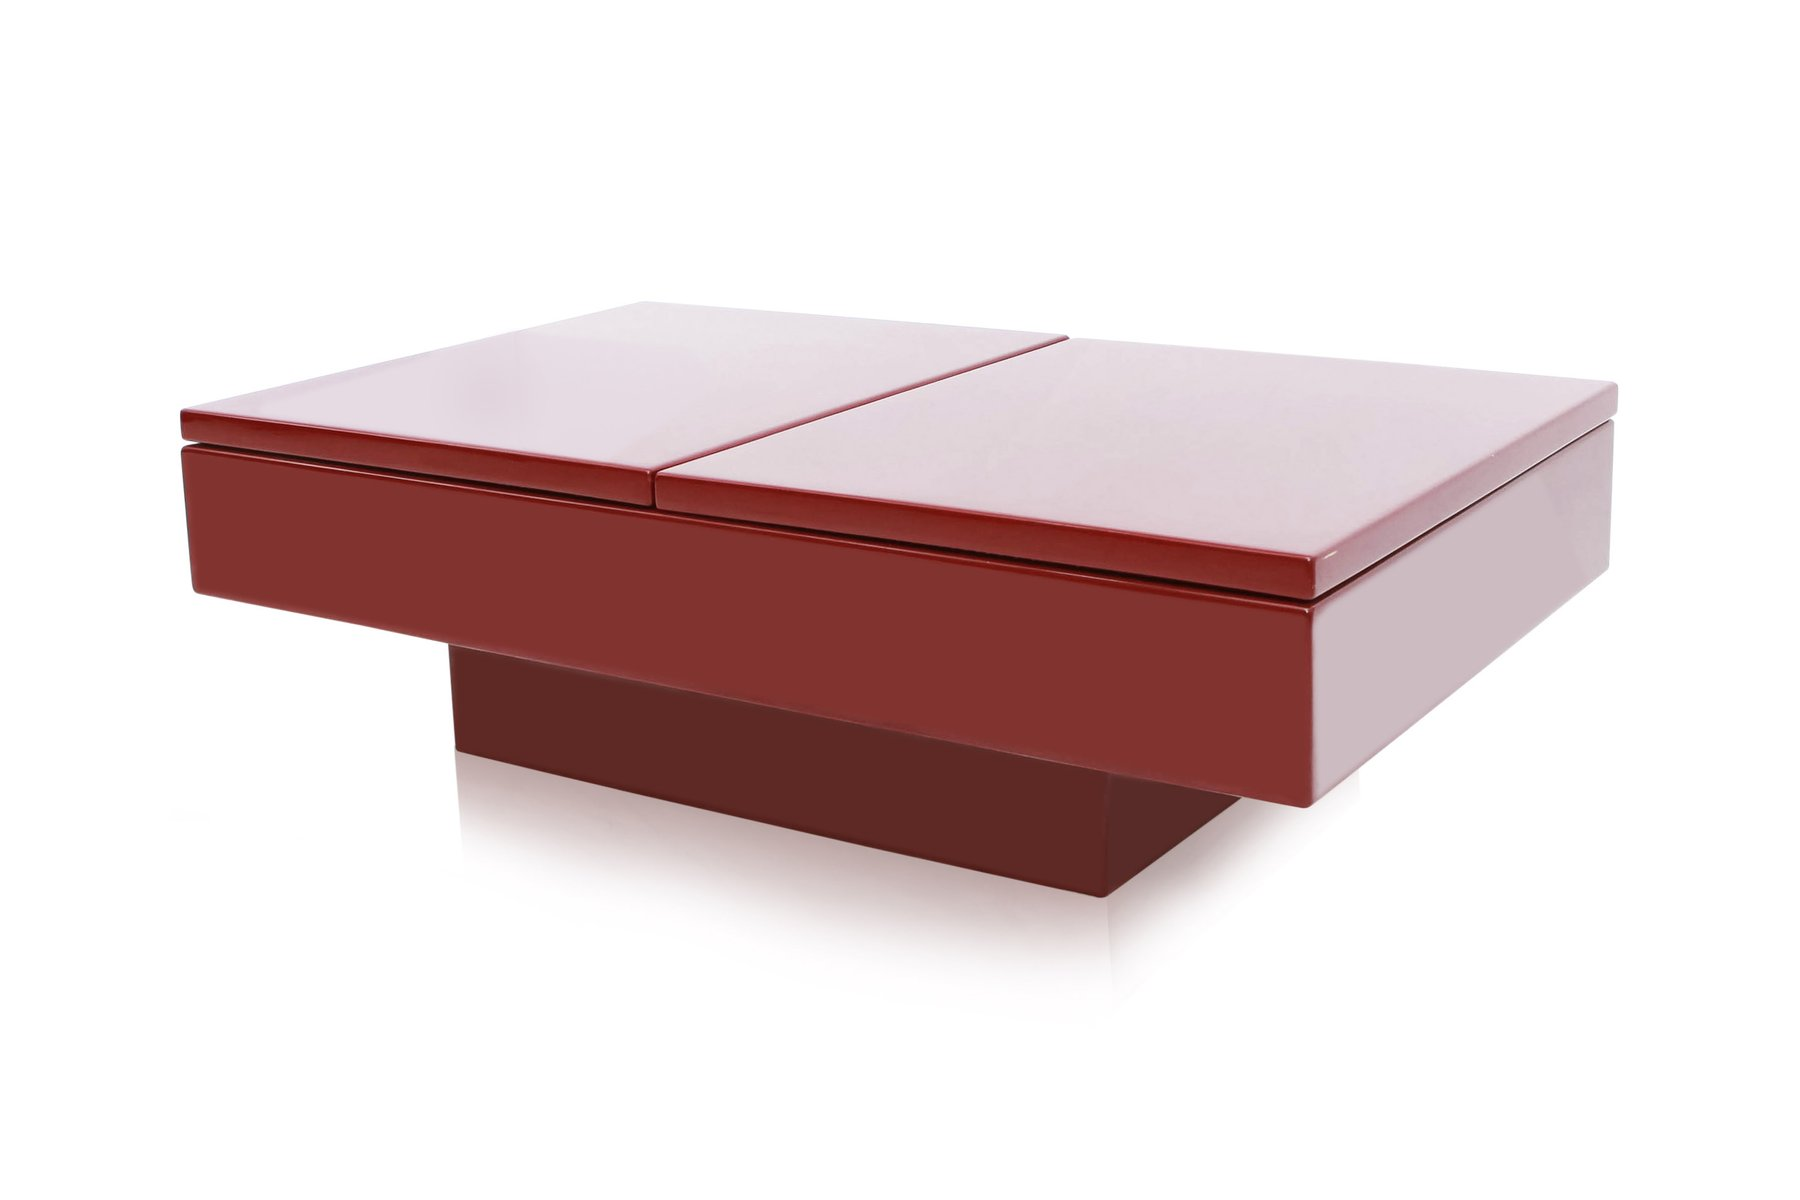 Red Lacquered Sliding Bar Coffee Table By Jean Claude Mahey 1980s For Sale At Pamono